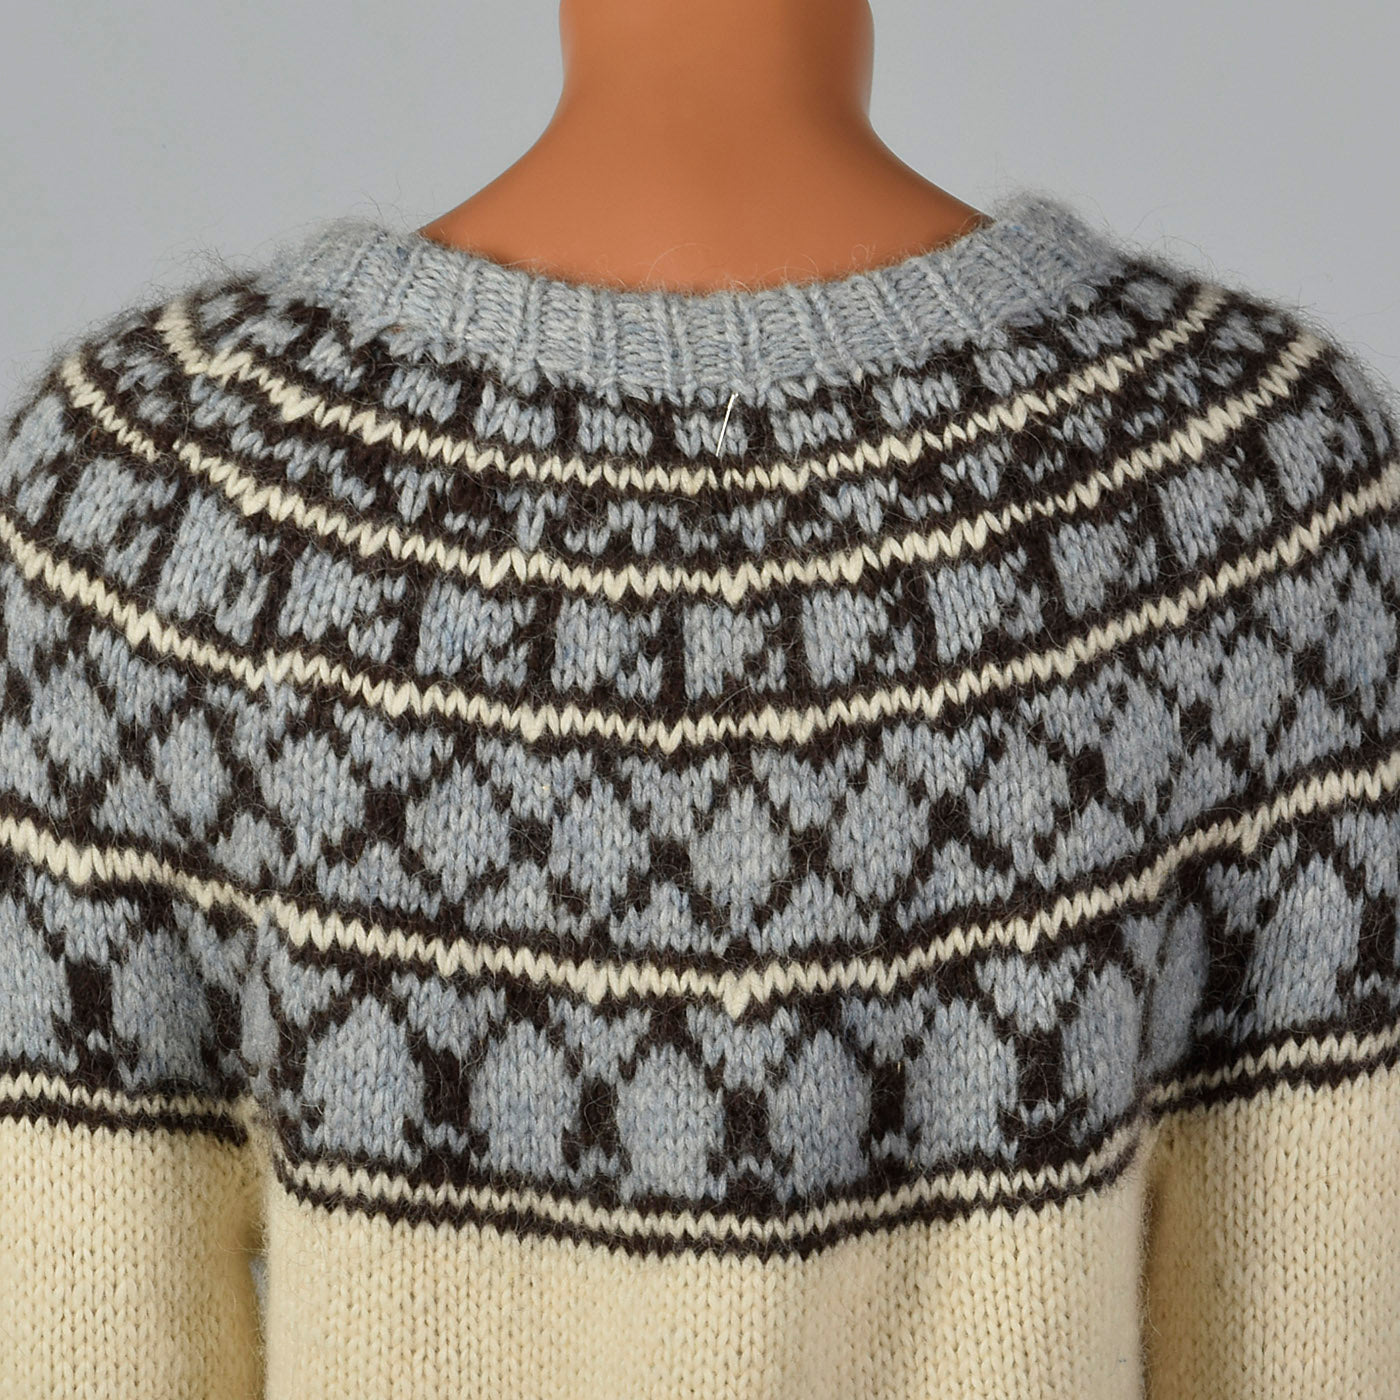 1960s Mens Cream Sweater with Gray, Blue, and Black Knit